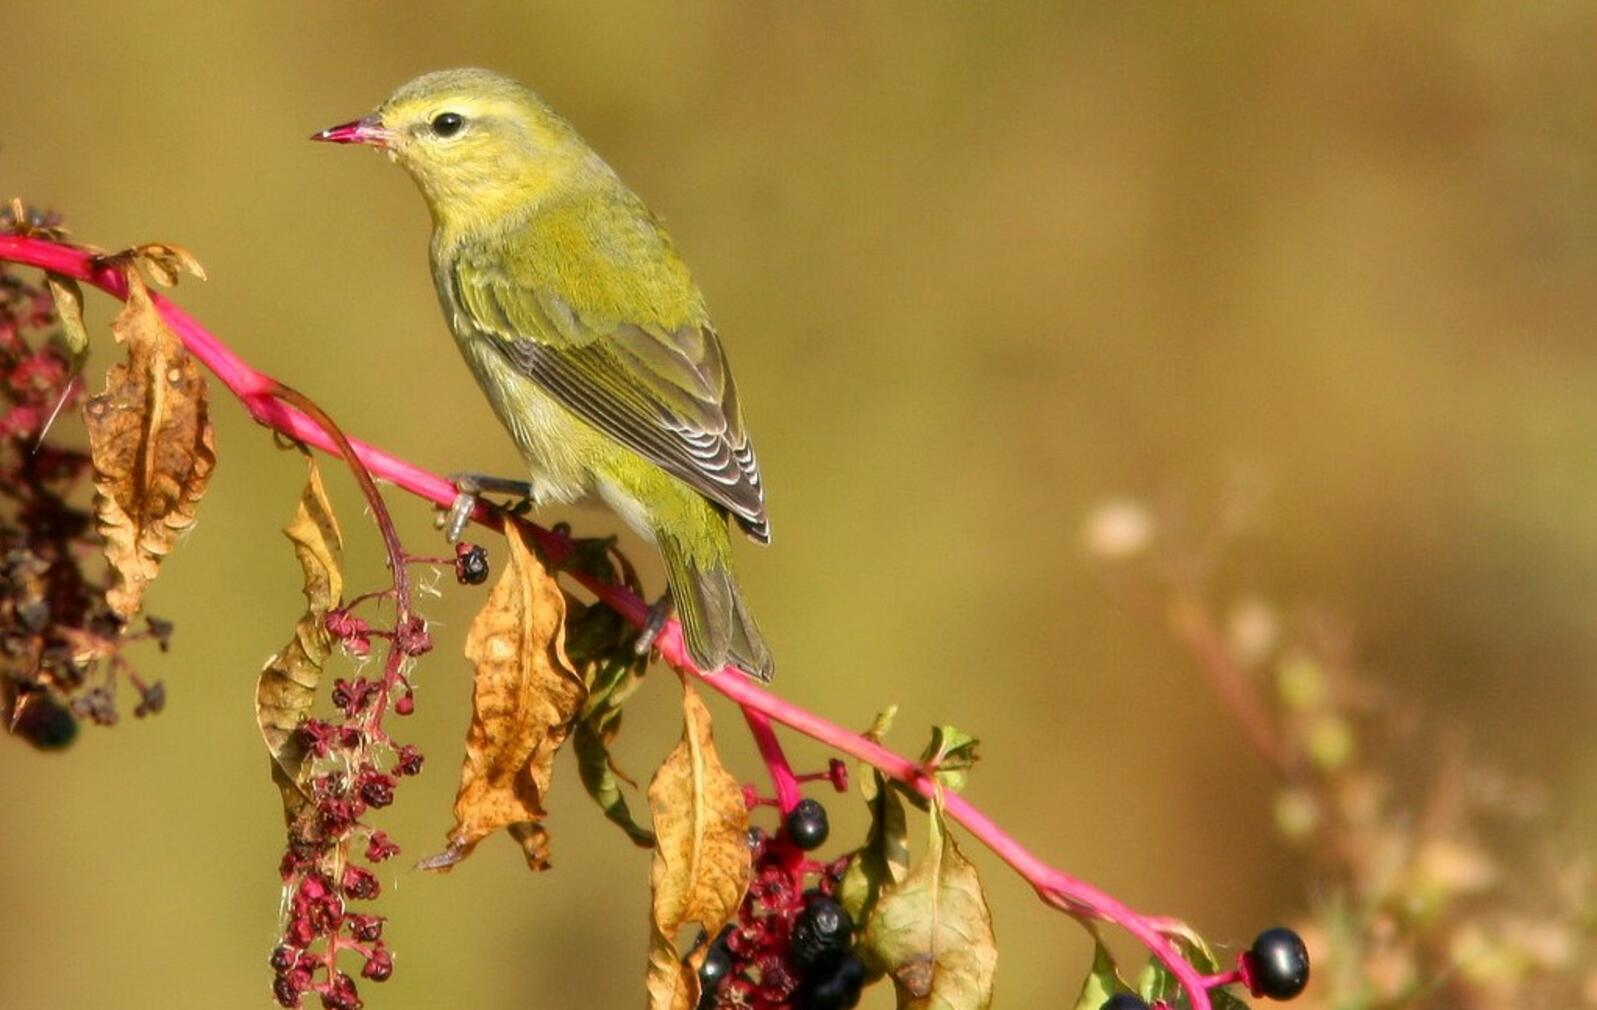 Tennessee Warblers eat more fruit and berries during fall migration.